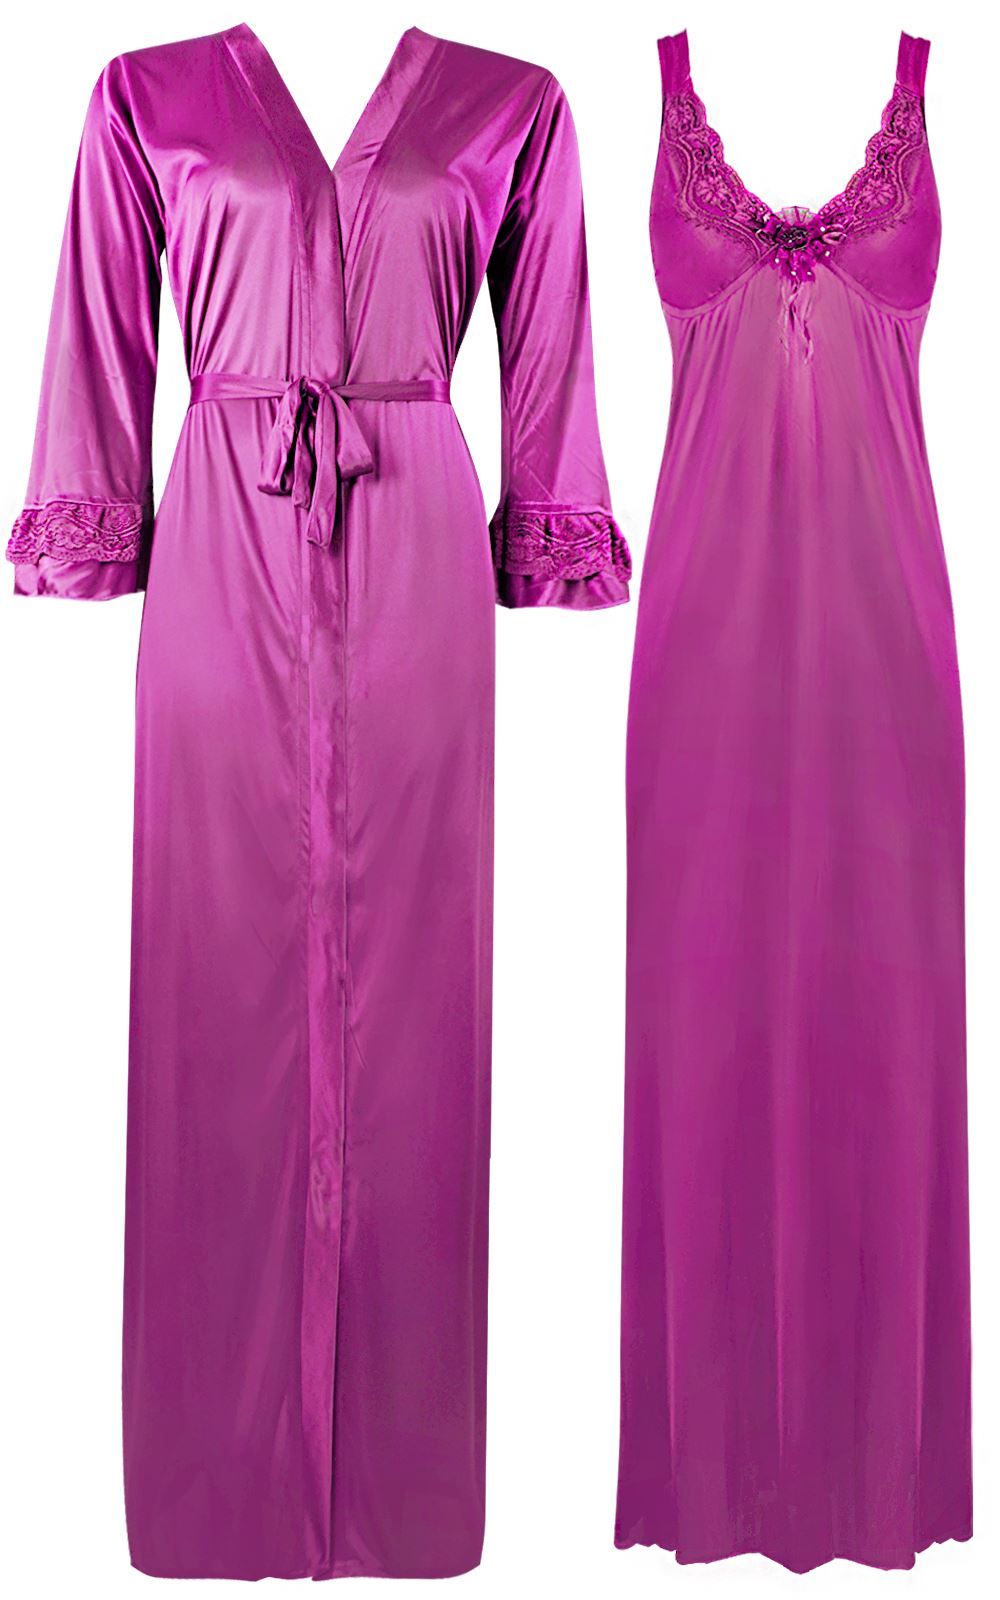 Color: Rose Pink 2 Piece Satin Nighty and Robe With Long Sleeve Dressing Gown Size: XL